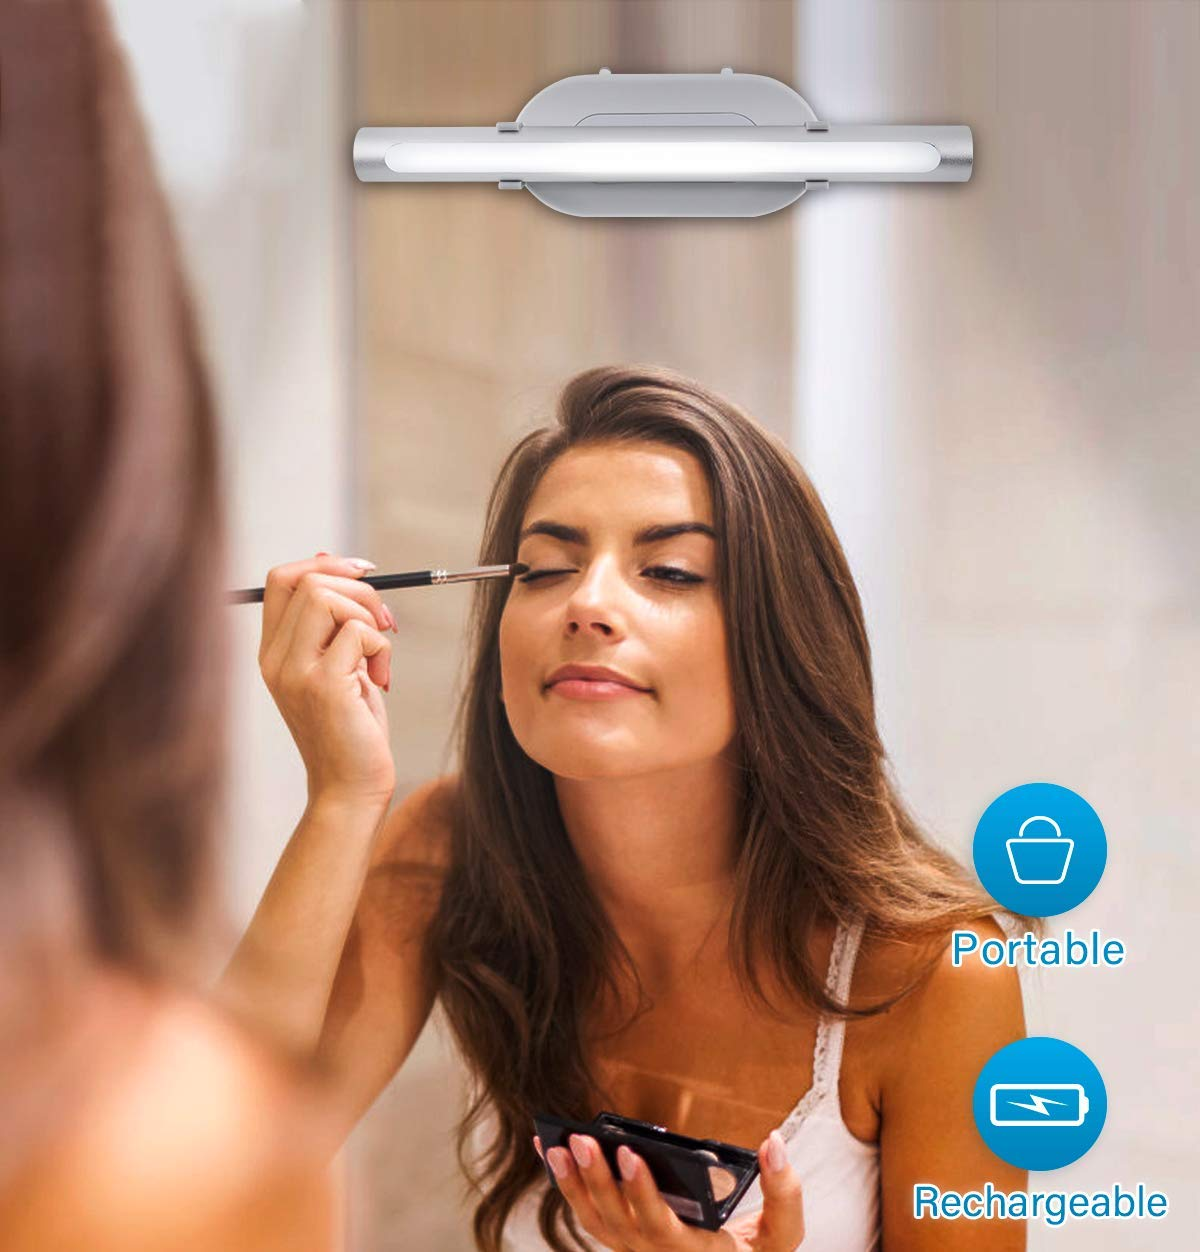 MYPLUS Portable Vanity Lights, Rechargeable Mirror Makeup Light with Brightness Adjust Function, Simulated Daylight for Perfect Makeup and Best Gift